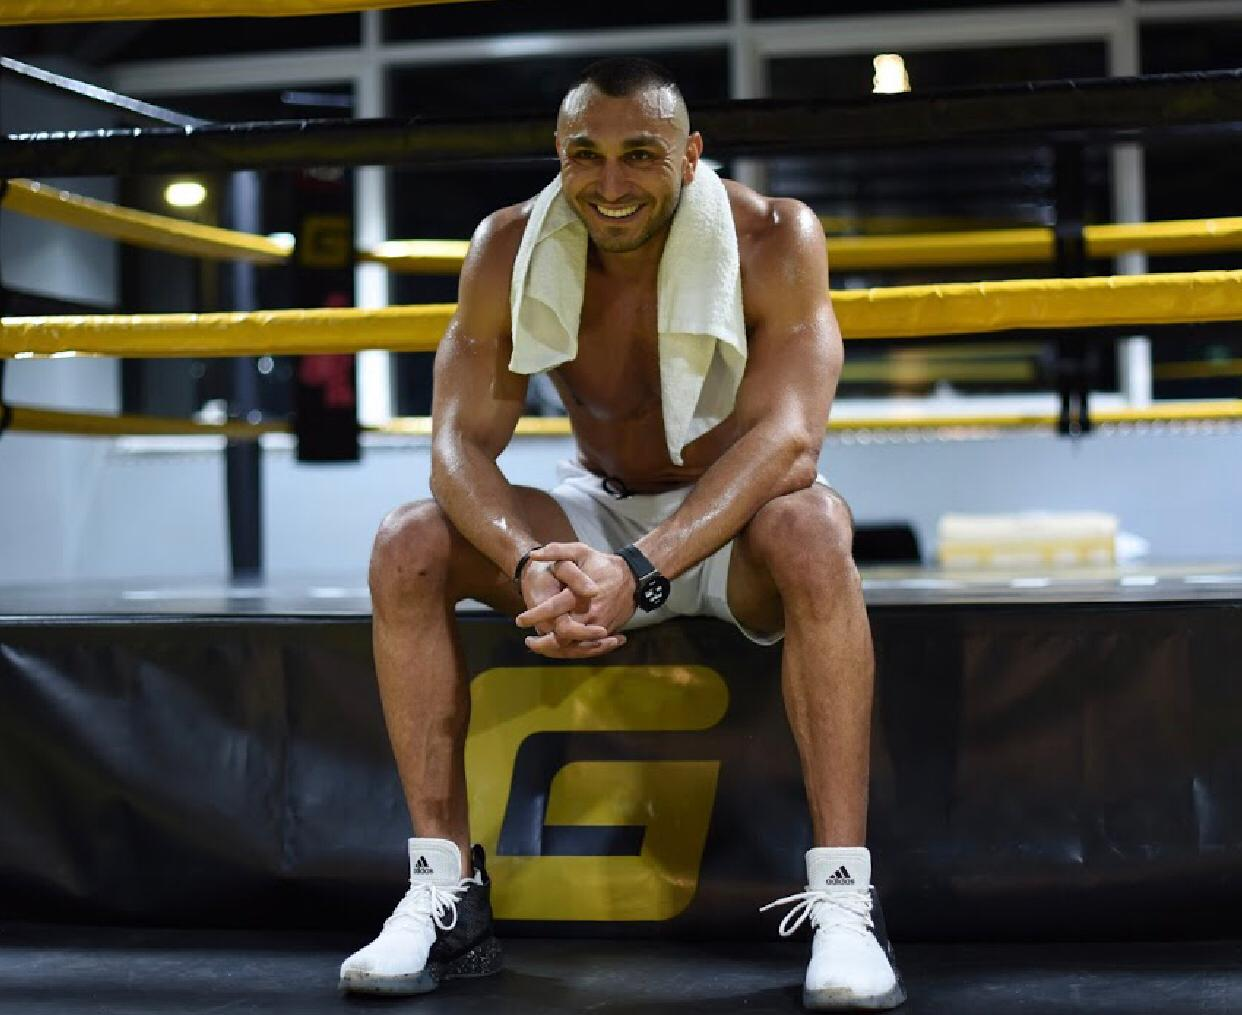 Ahmed Ahmed, one of the best fitness trainers in UAE